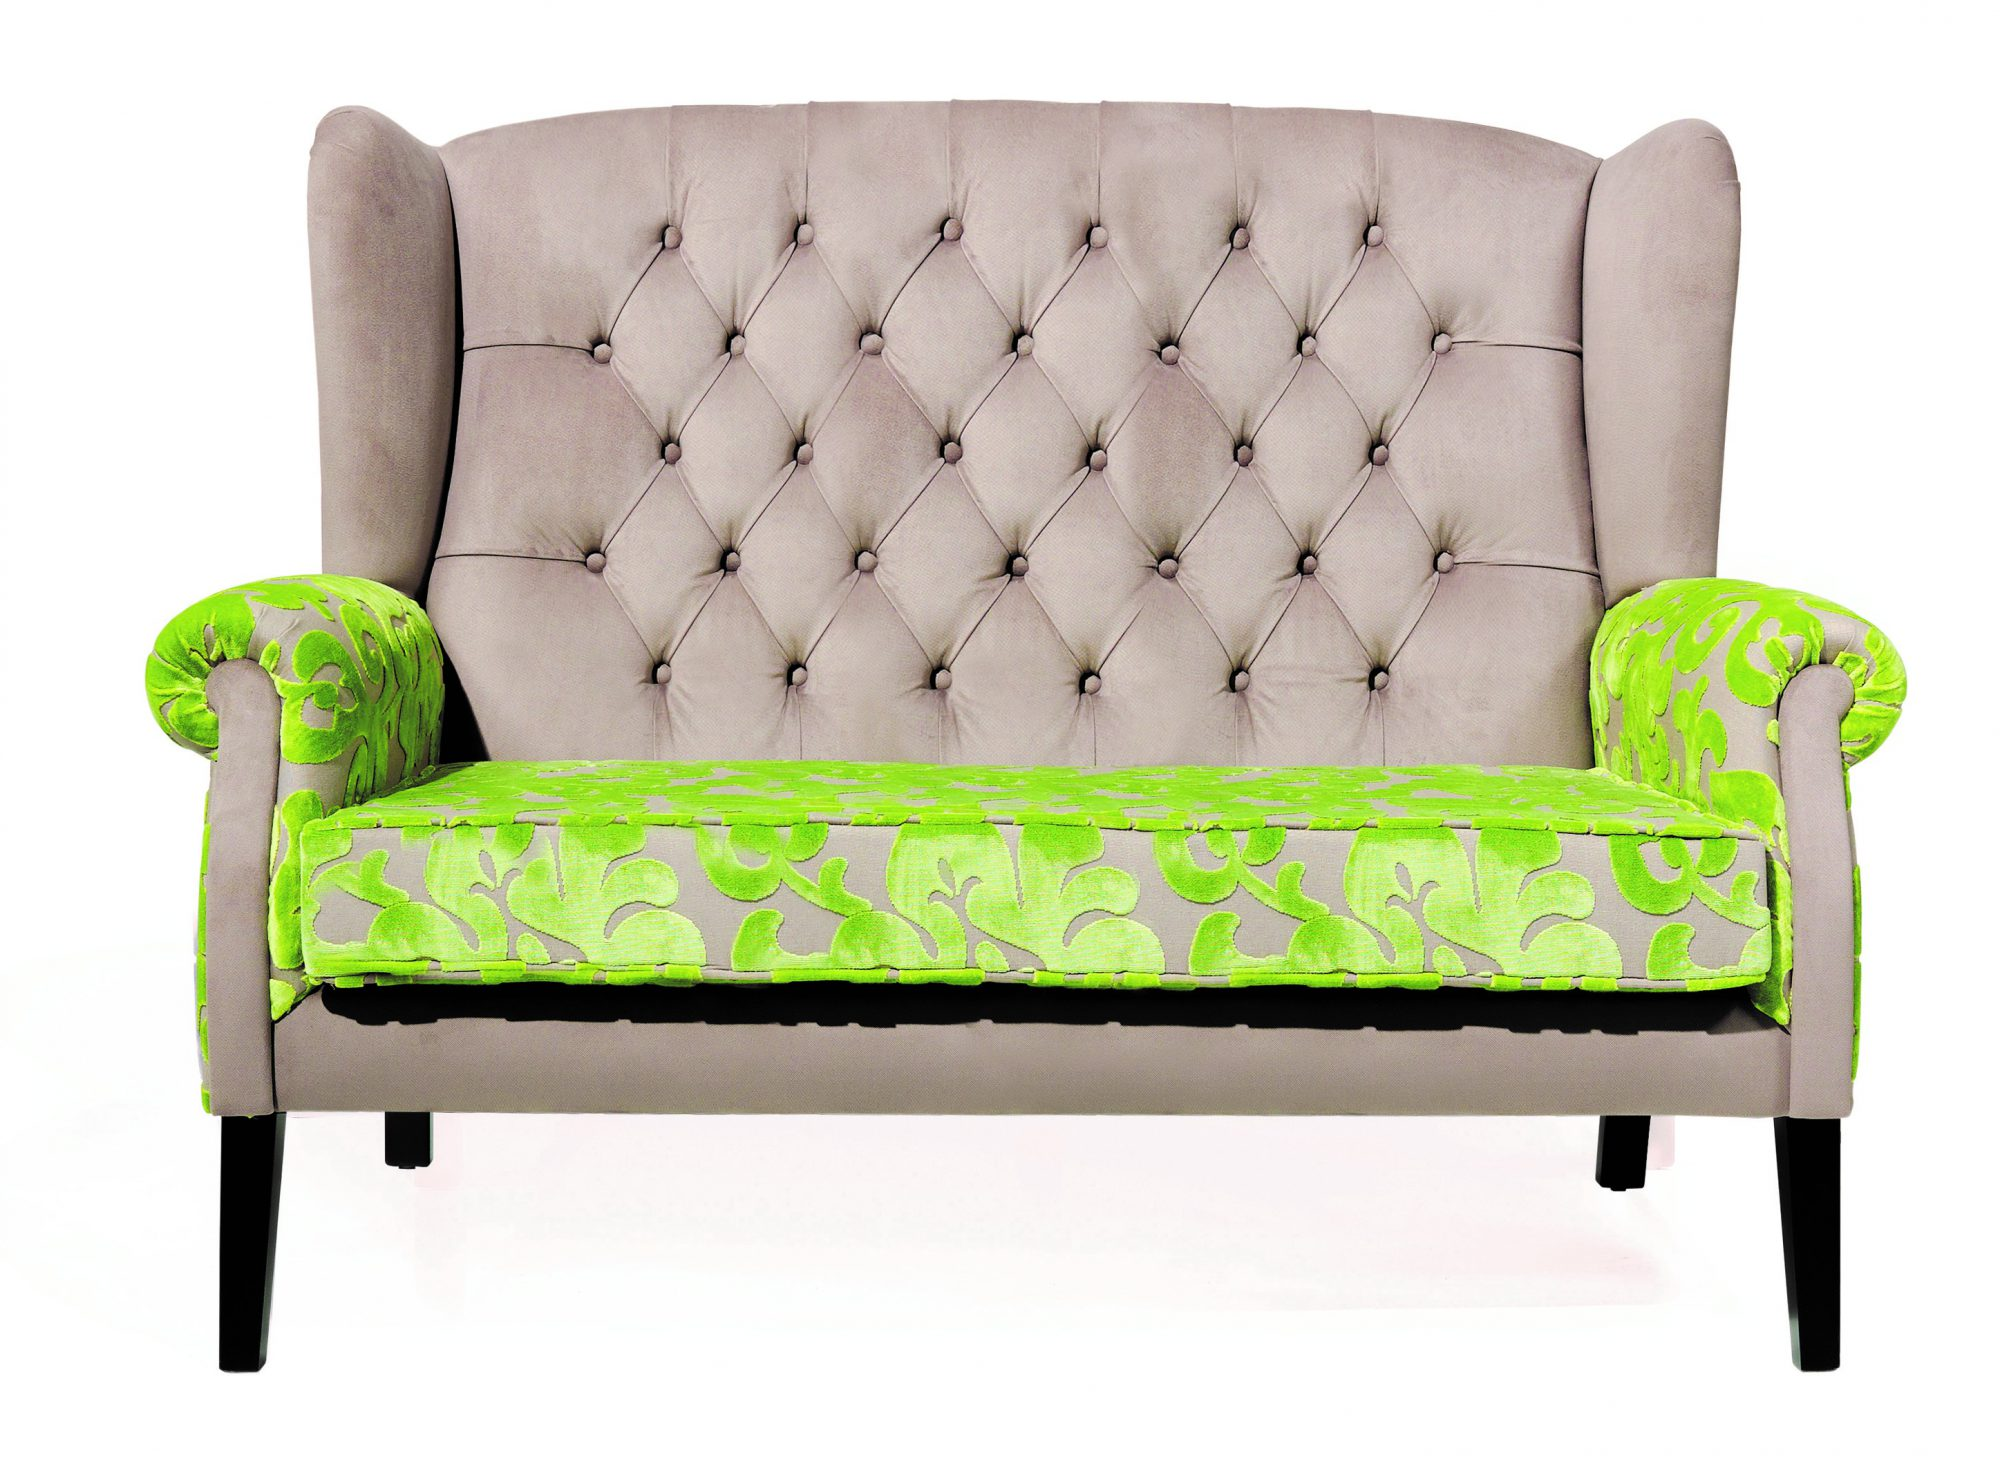 otto sofa telegraph contract furniture. Black Bedroom Furniture Sets. Home Design Ideas